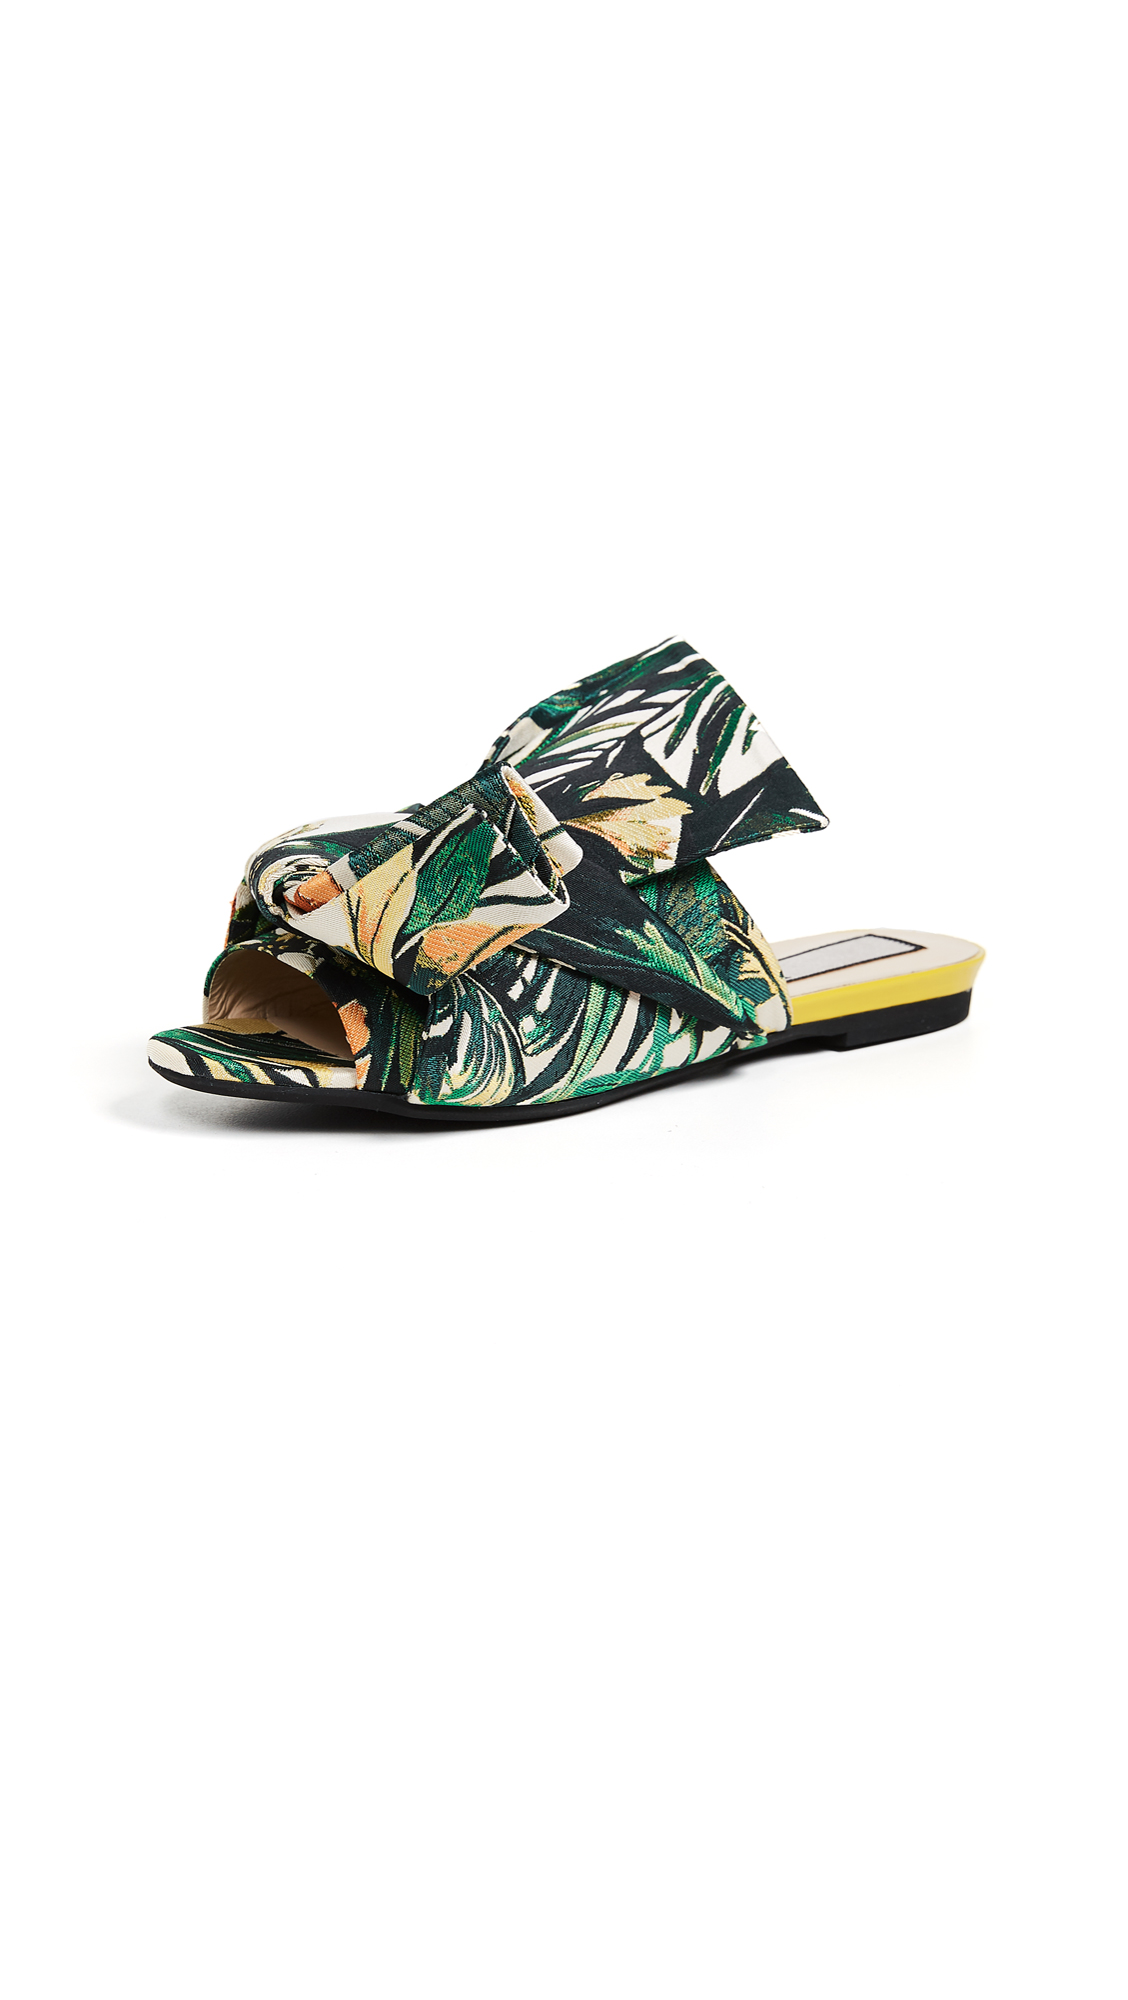 No. 21 Jacquard Knot Slide Sandals - Palms Print